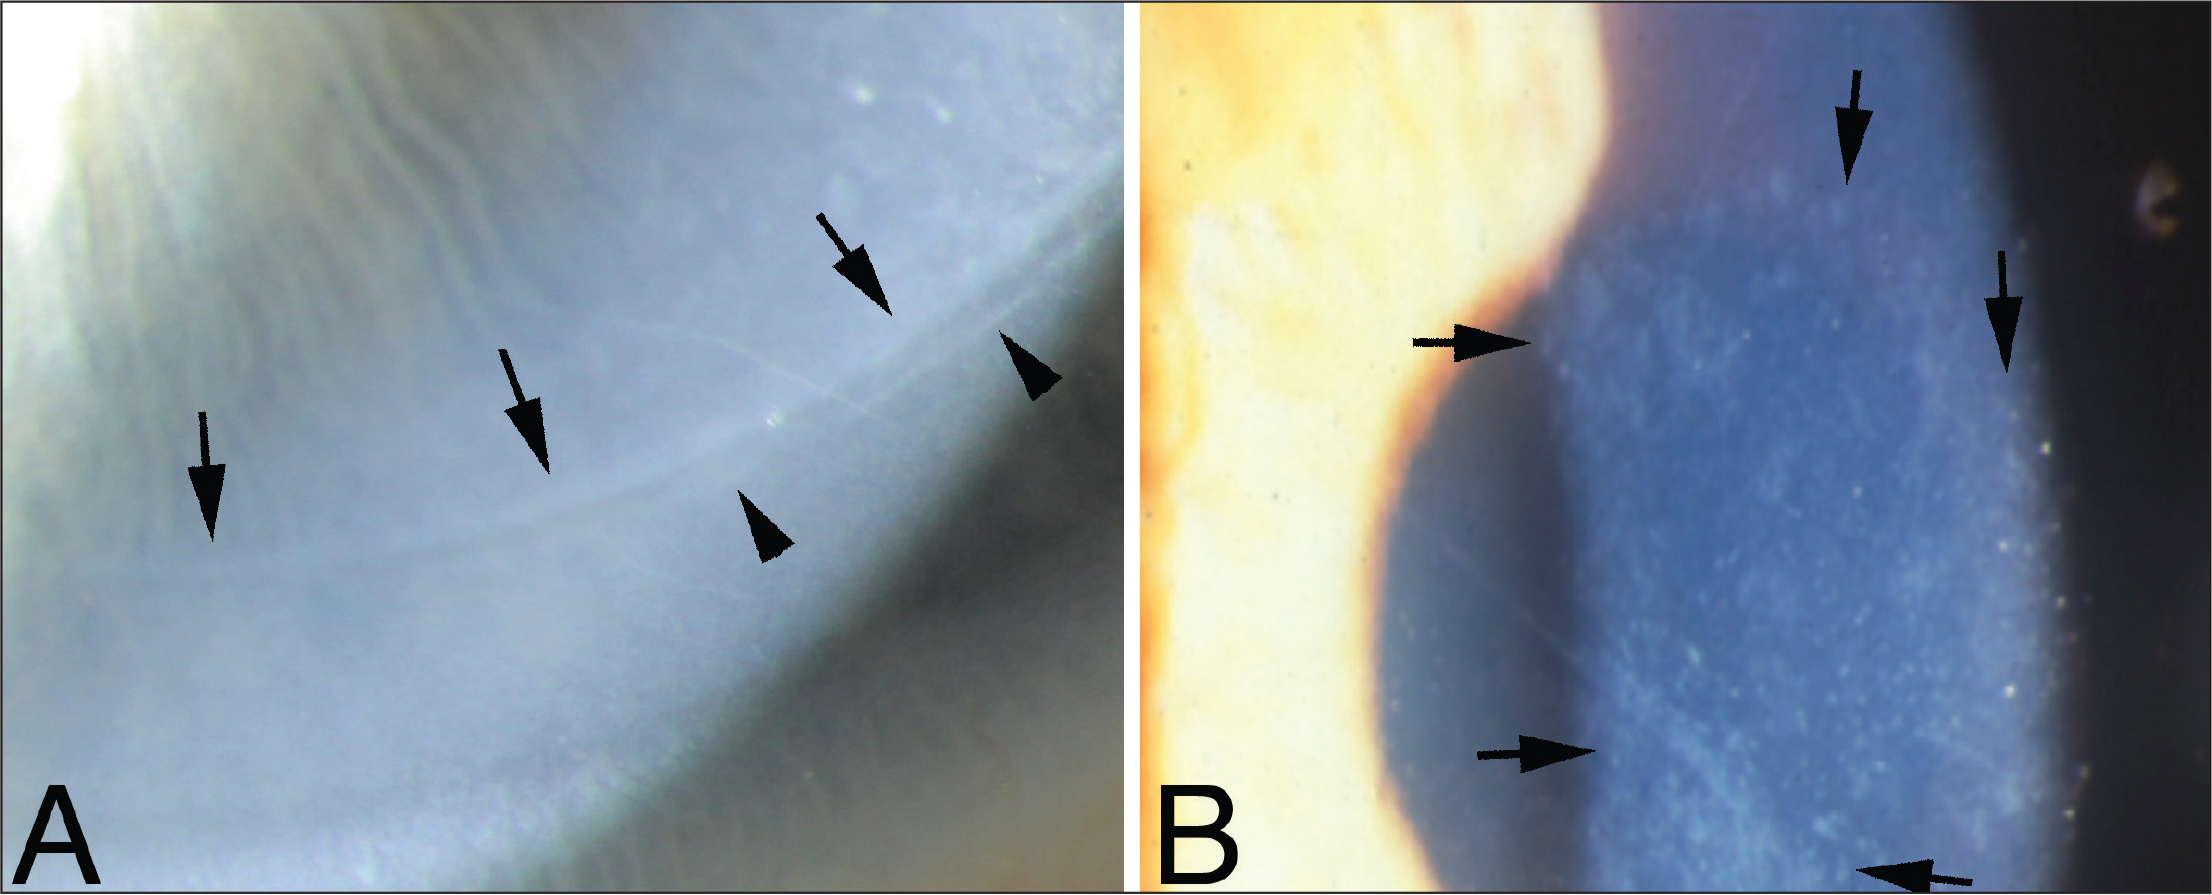 Fibrosis in laser in situ keratomileusis (LASIK). (A) Normal corneal fibrosis at the flap edge that is normal after LASIK. In this case, there is a double line with the internal line indicated by arrows and the outer line indicated by arrowheads. This fibrosis is mediated by myofibroblasts. (B) A flap complication with a microkeratome resulted in patches of subepithelial fibrosis (arrows) surrounding the linear cut through the epithelium and into the stroma. This fibrosis is also mediated by the development of myofibroblasts. Original magnification ×25.